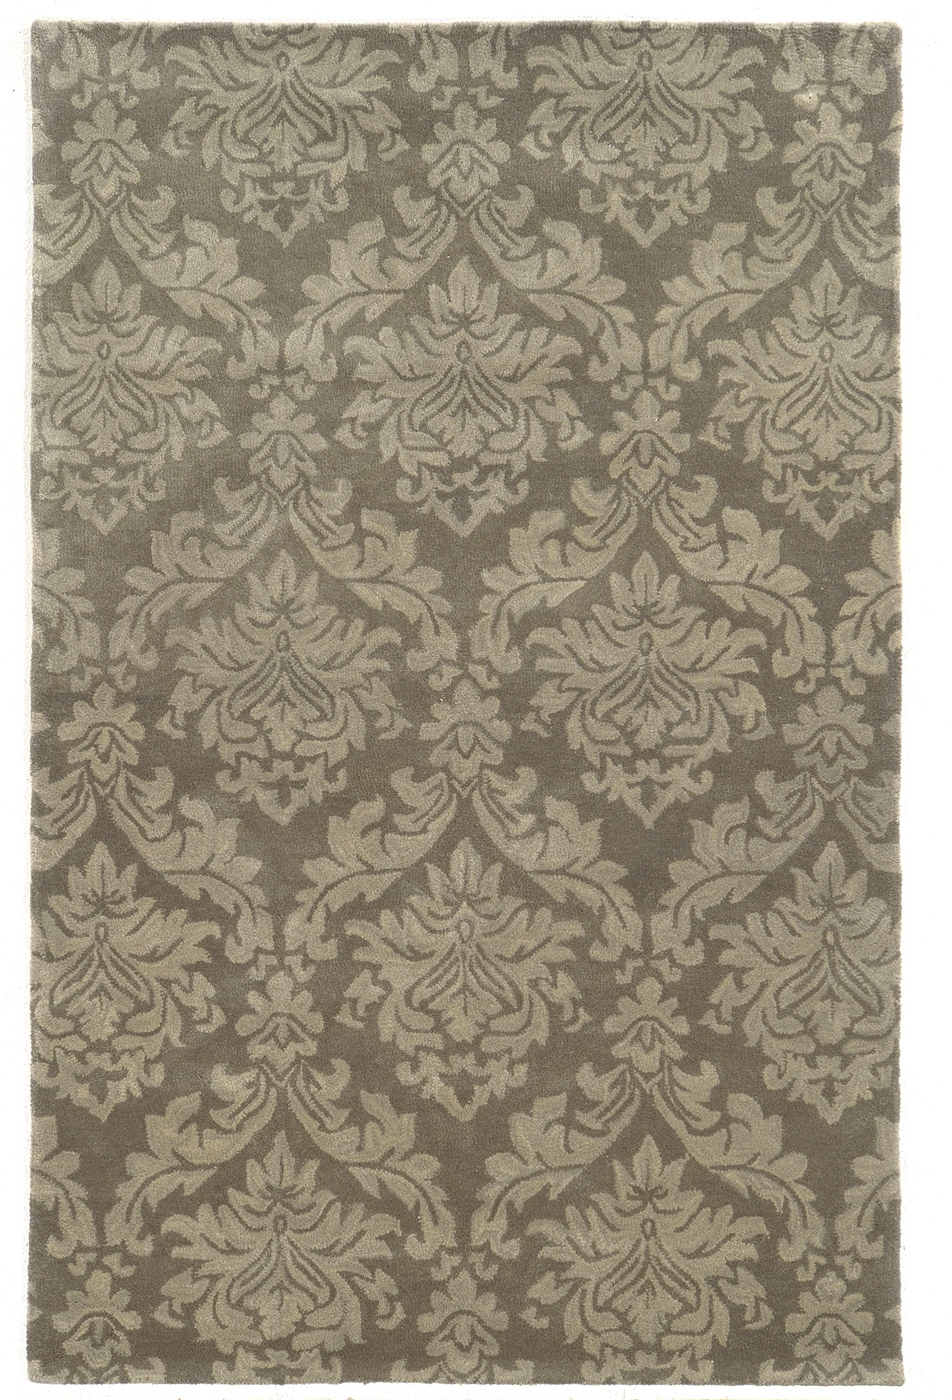 Bradberry Downs Damask Pattern Wool Area Rug In Gray